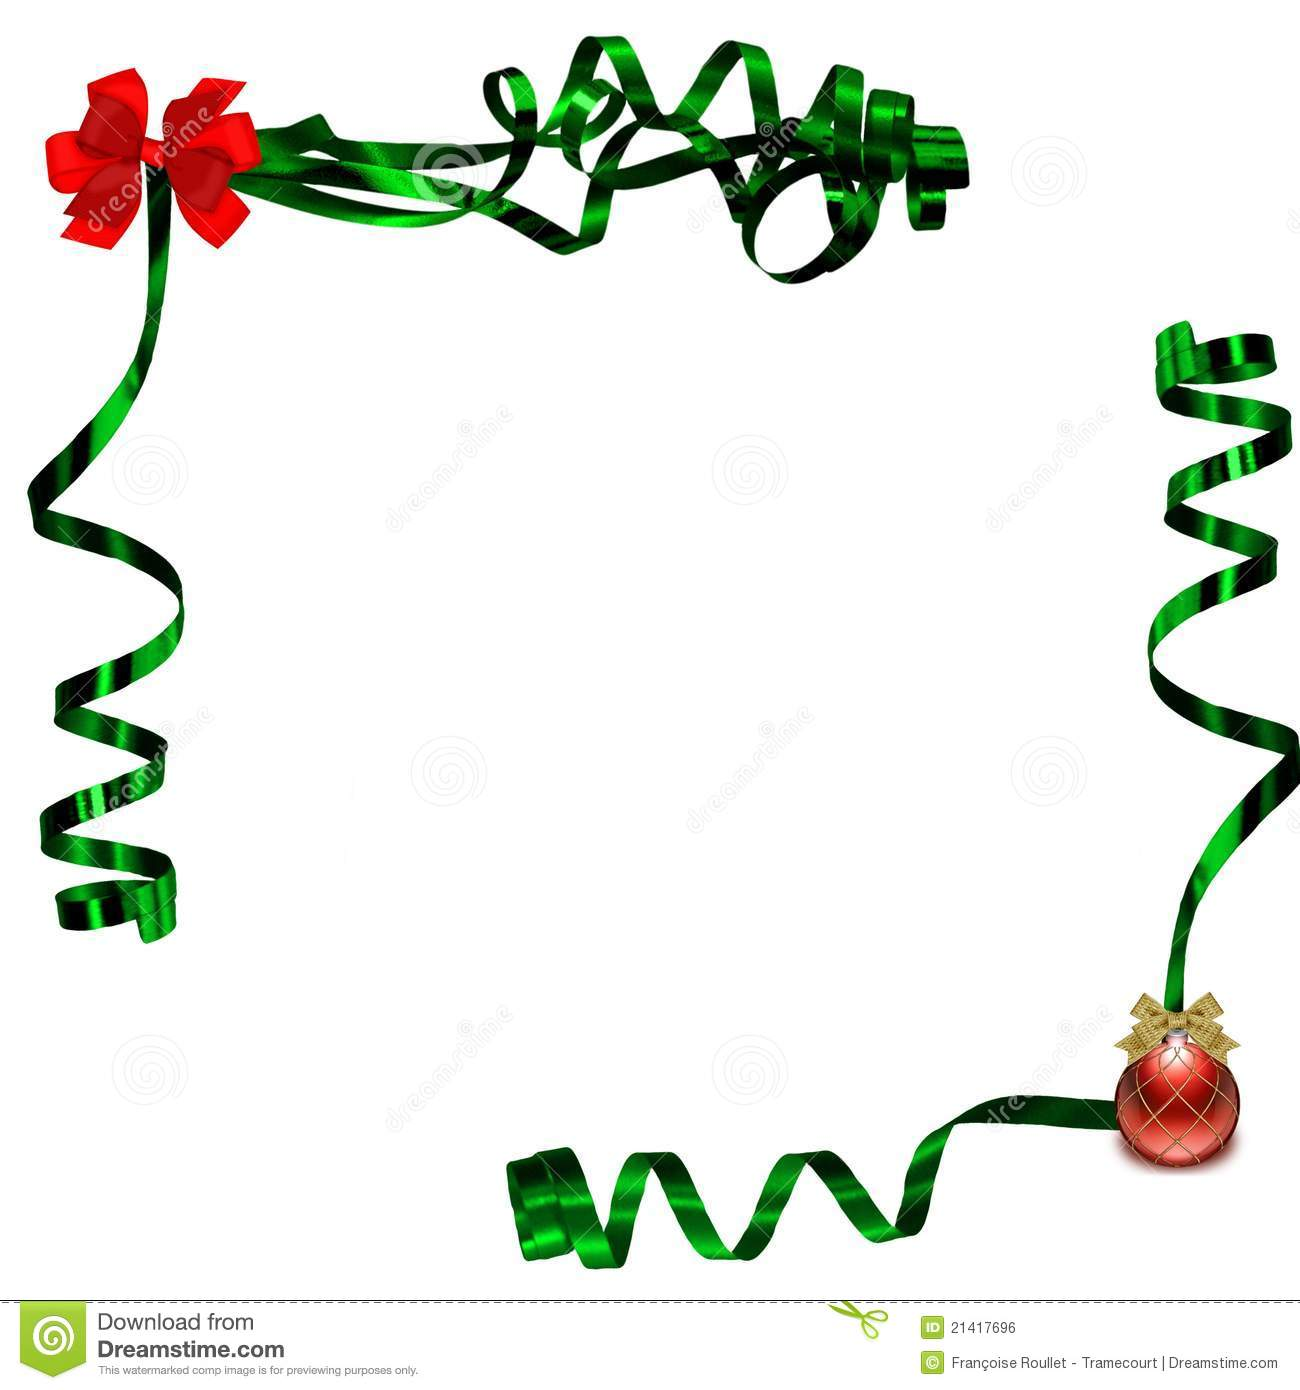 https://thumbs.dreamstime.com/z/red-green-christmas-ribbons-background-21417696.jpg